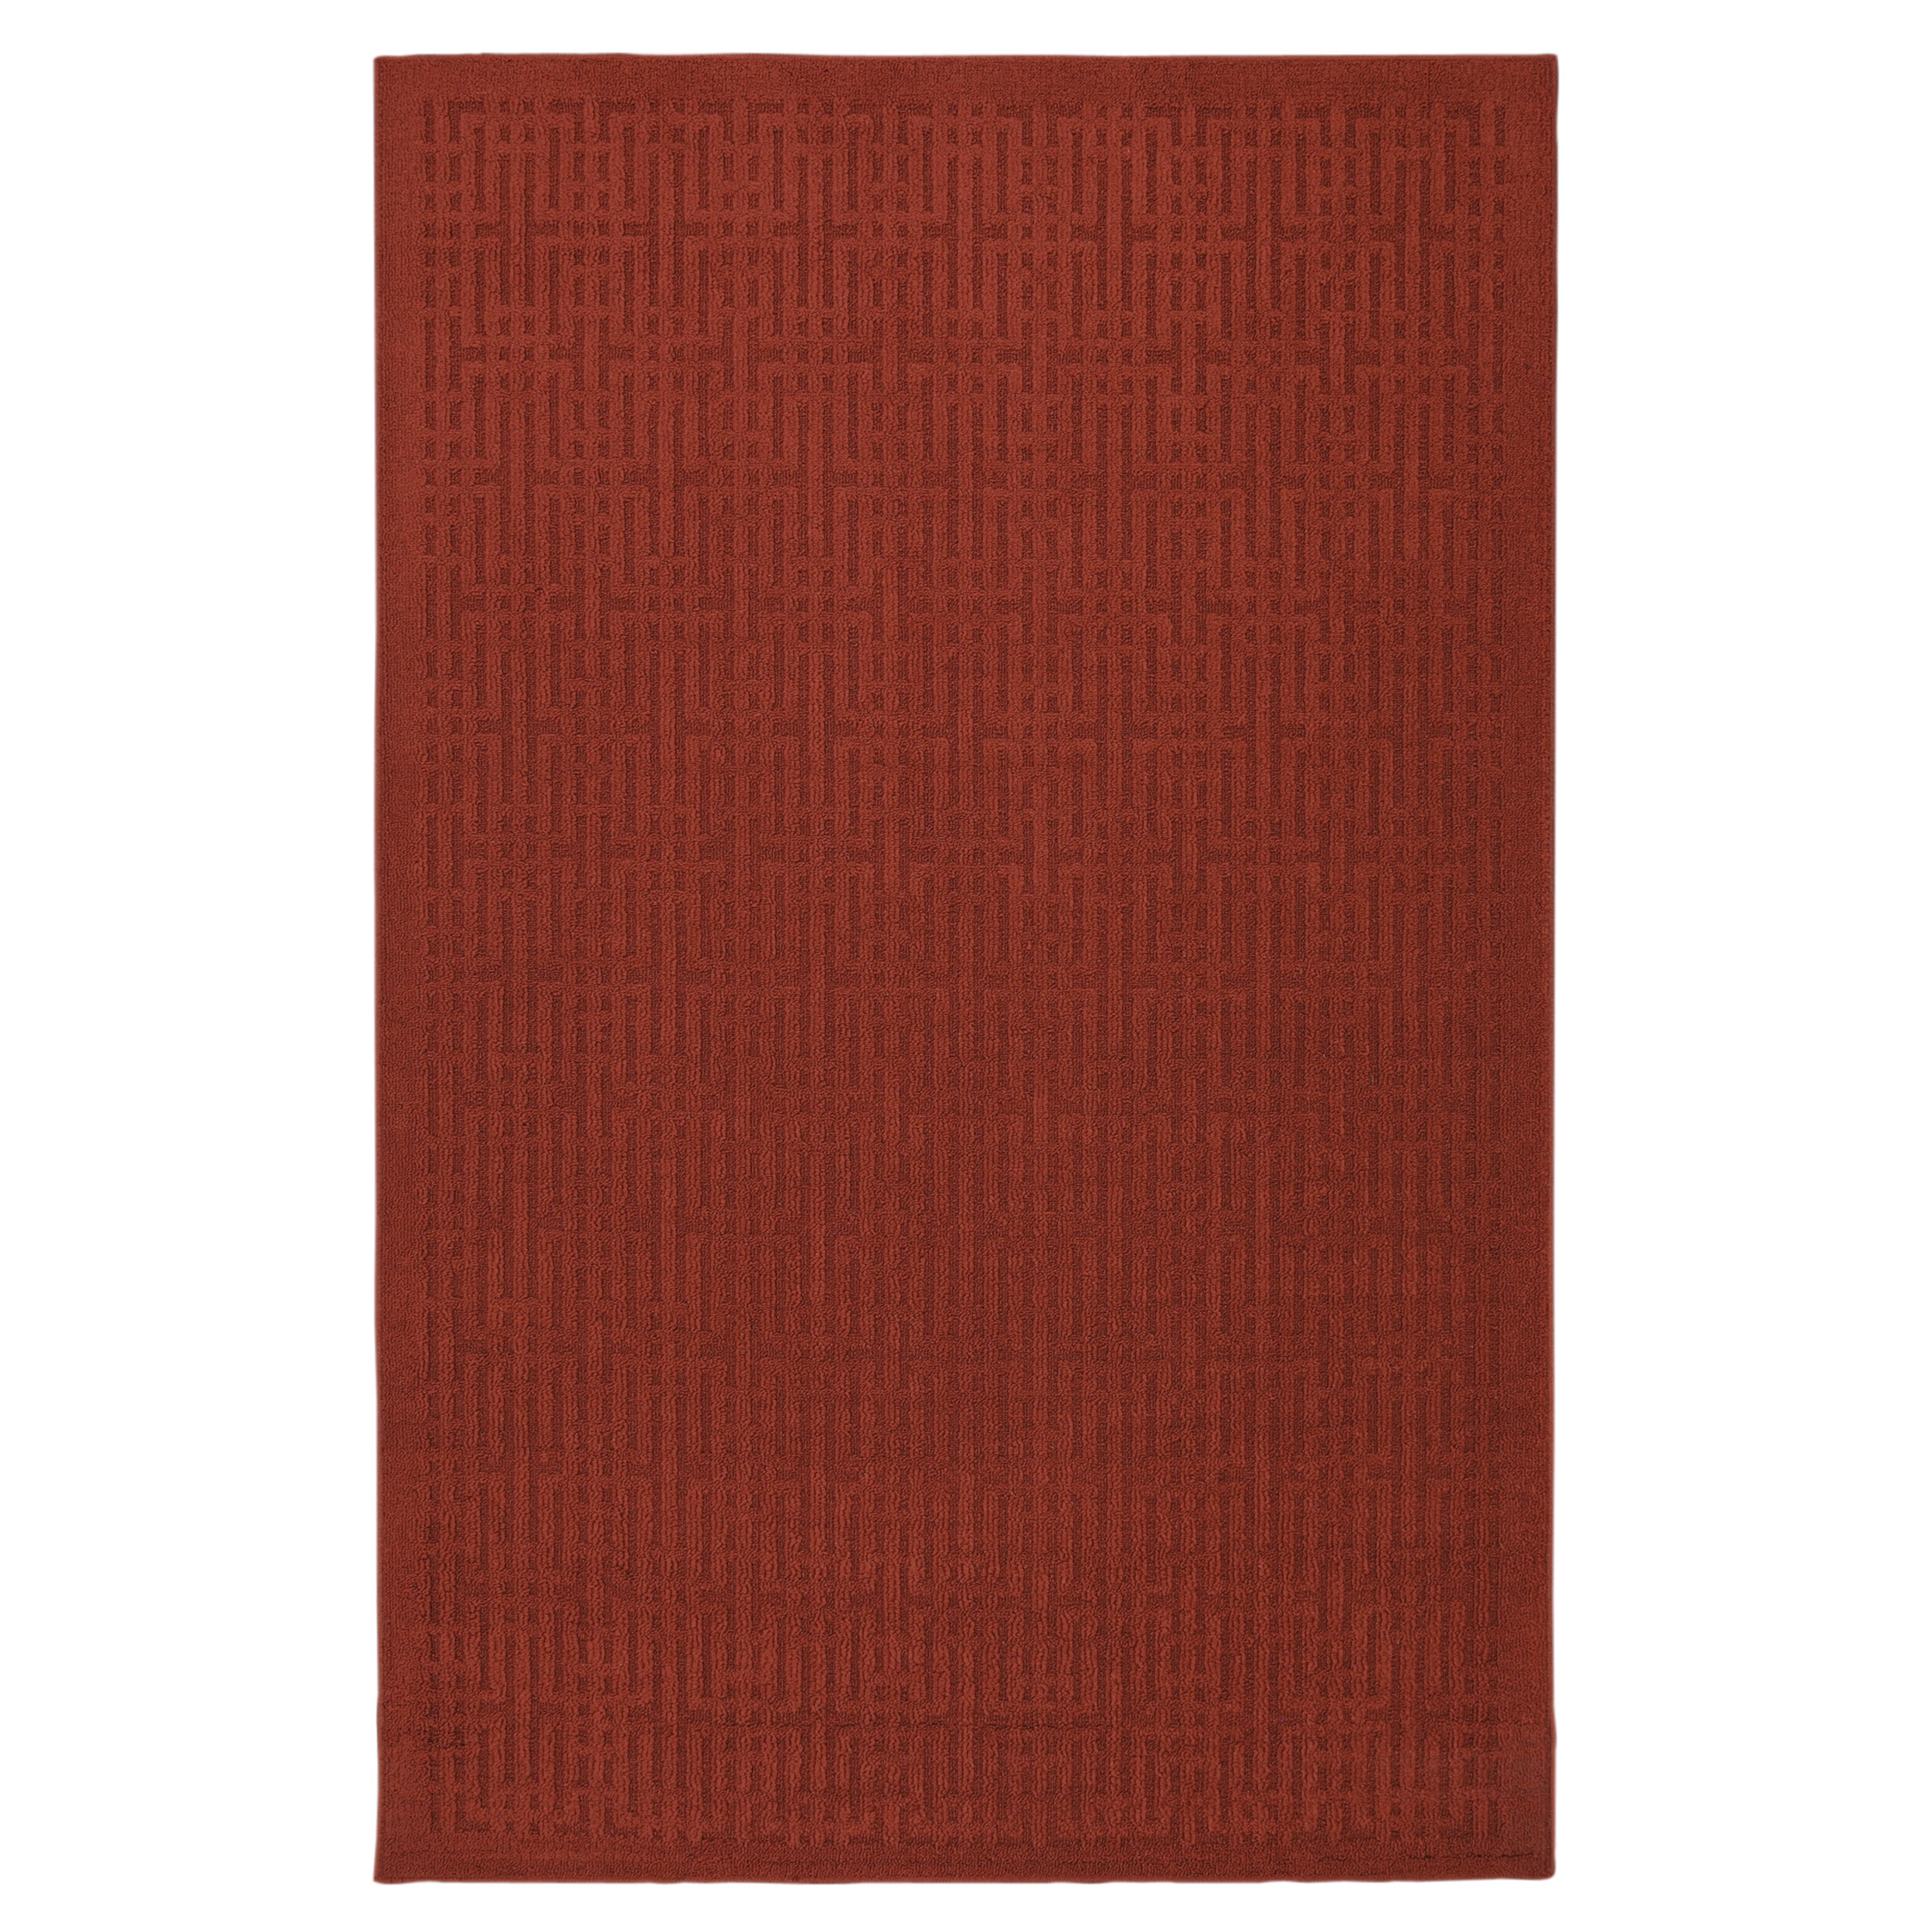 Stacks Madder Rusty Red Rug (1'8 x 5')